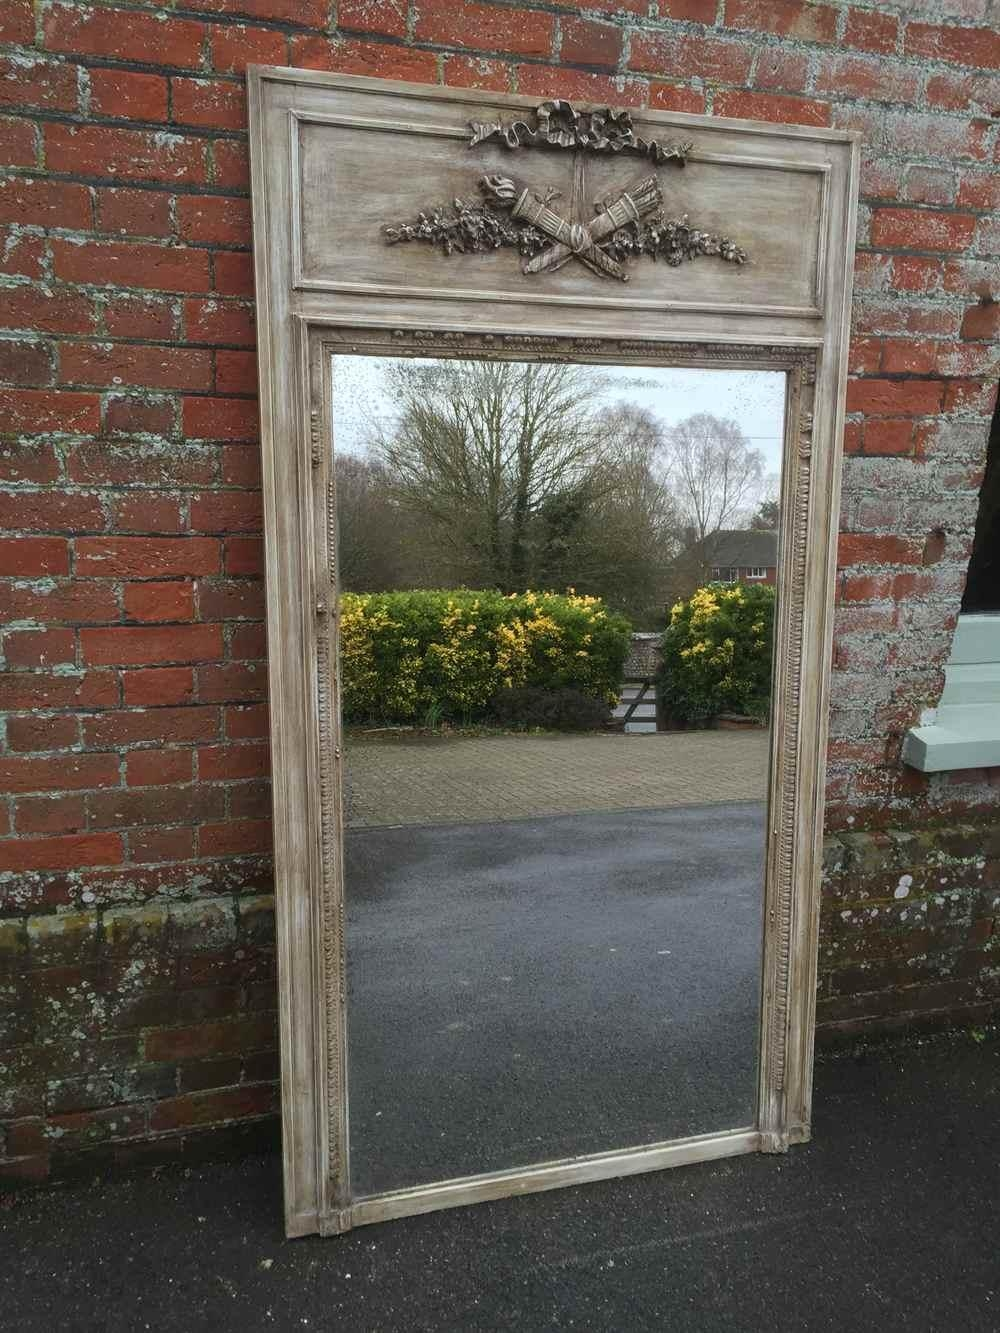 A Large Antique 19Th Century French Carved Wood & Gesso Painted Pertaining To Ornate French Mirrors (Image 3 of 20)